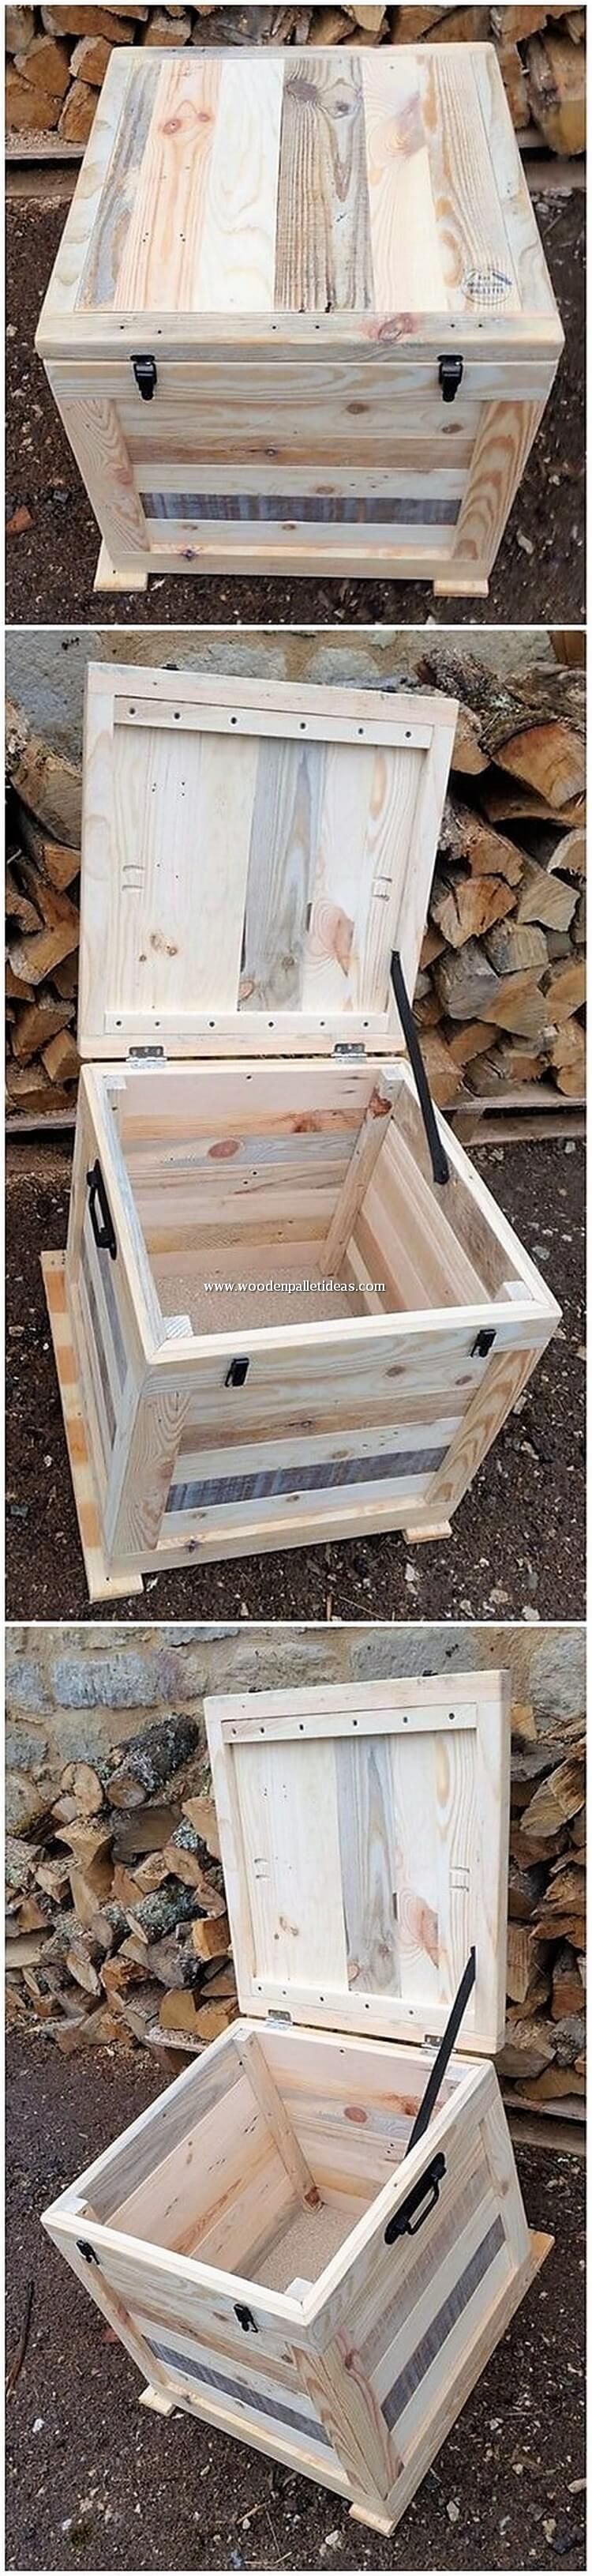 Most Recent Diy Wood Pallet Projects And Ideas Diy Wood Pallet Projects Wood Pallet Projects Wood Pallets